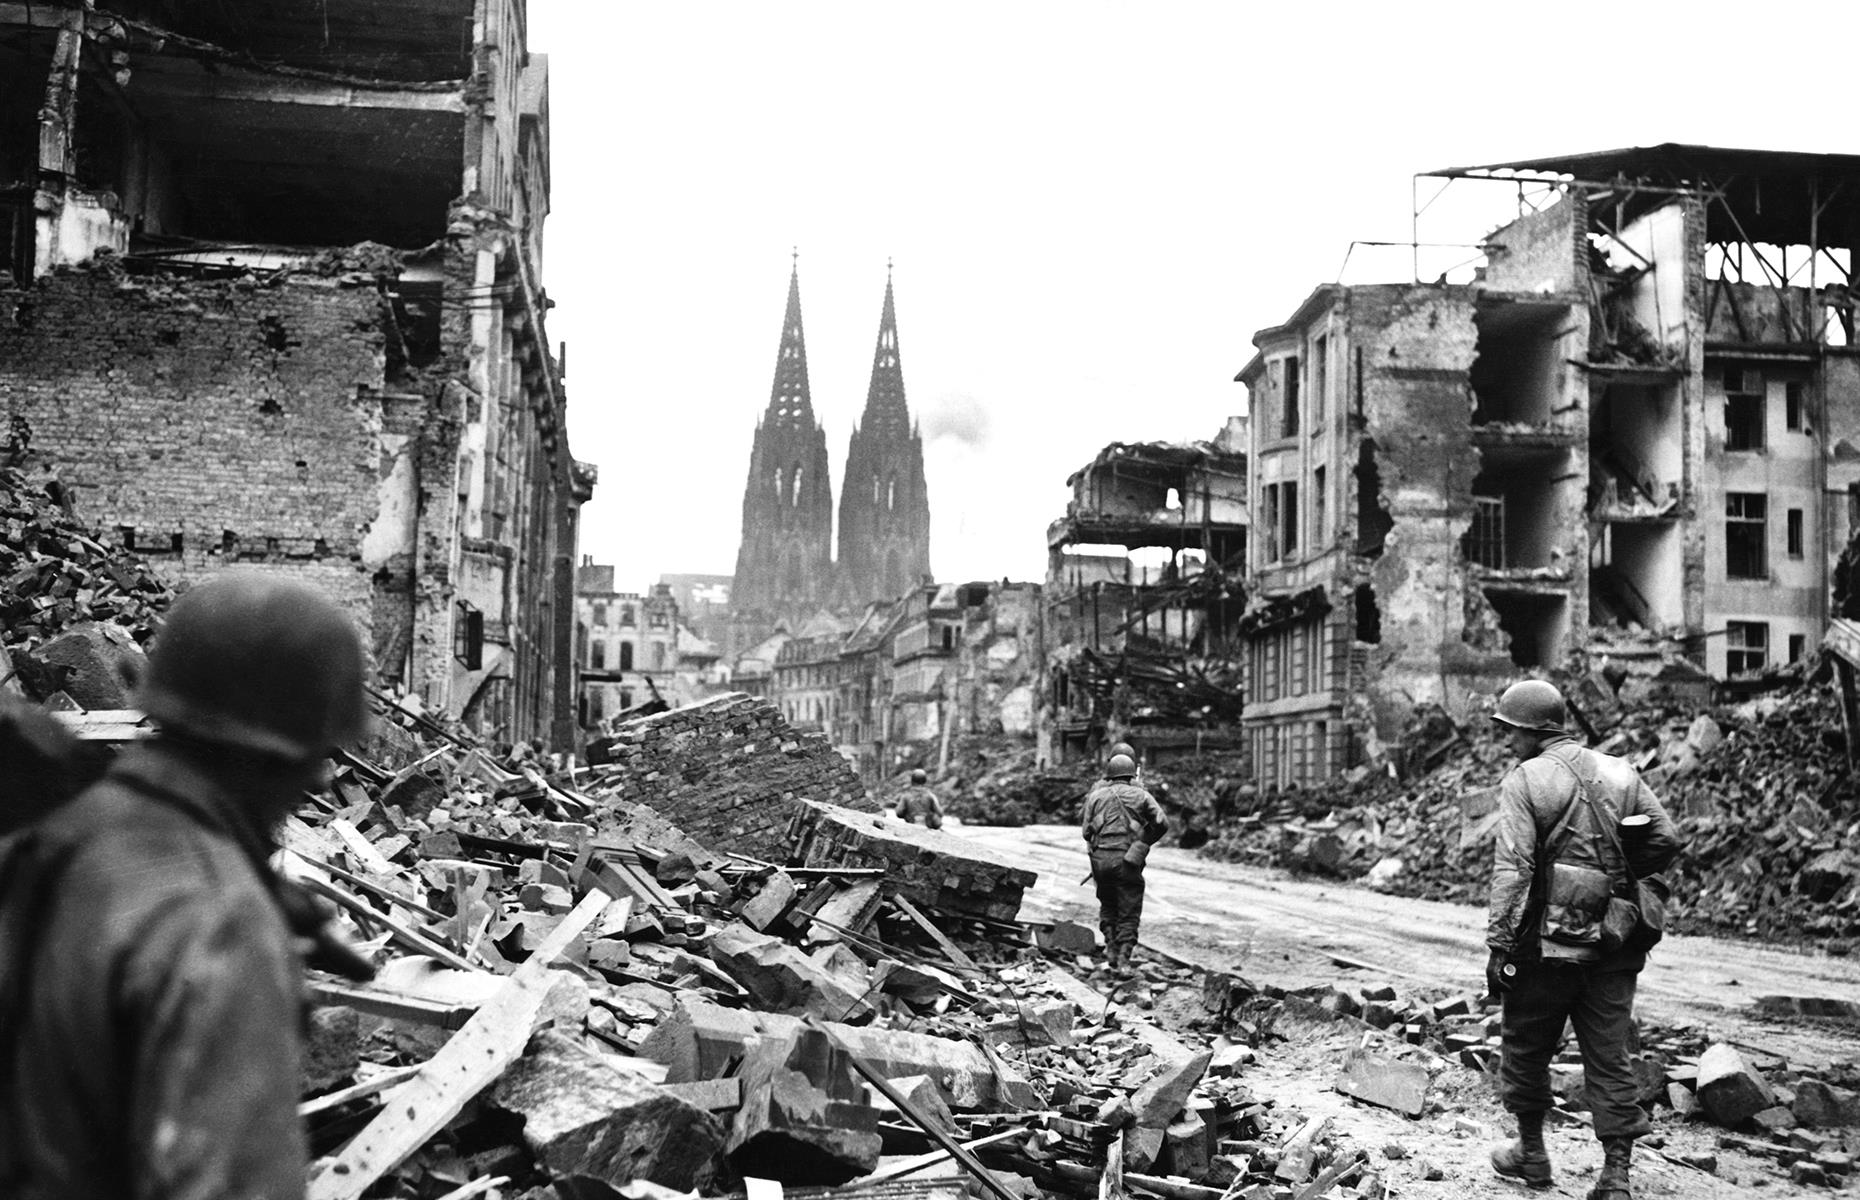 Slide 13 of 32: Although the cathedral suffered extensive damage – including holes in its walls and spires, and shattered stained glass – it remained standing. In this striking image, the cathedral is seen brooding over the flattened city in 1945 as US troops move through the ruins.